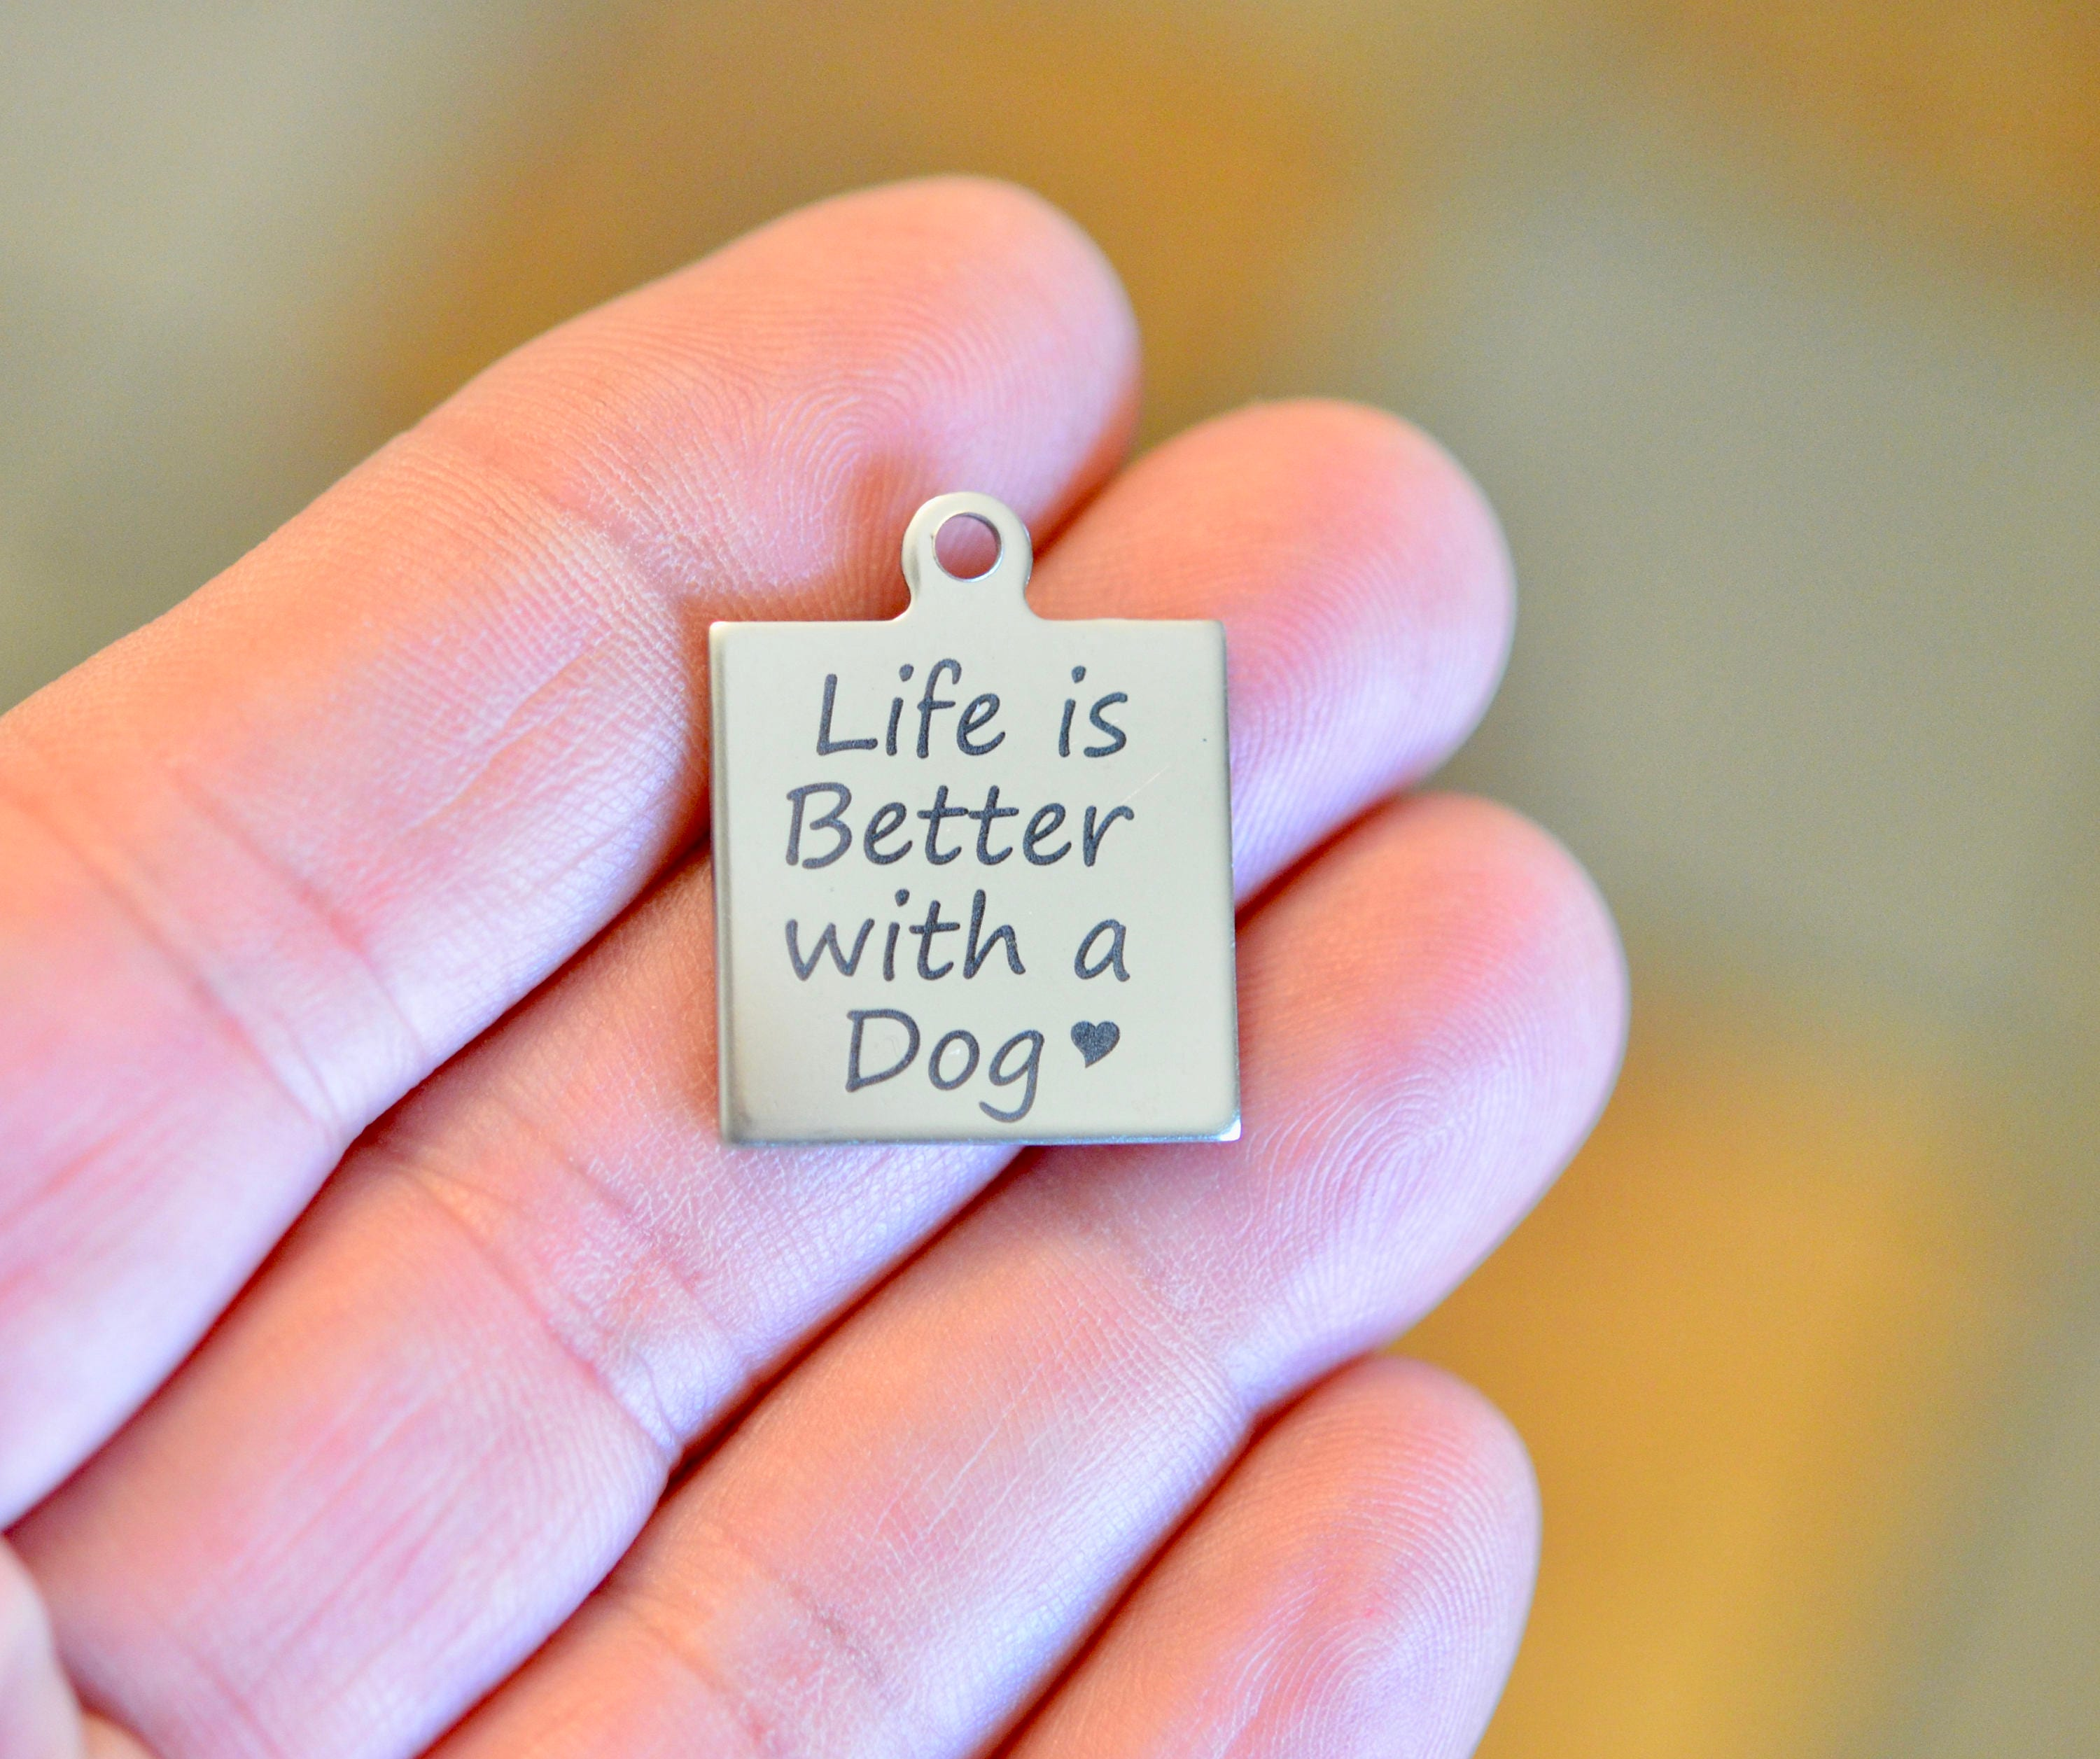 Life is Better with a Dog Stainless Steel Laser Engraved   Etsy